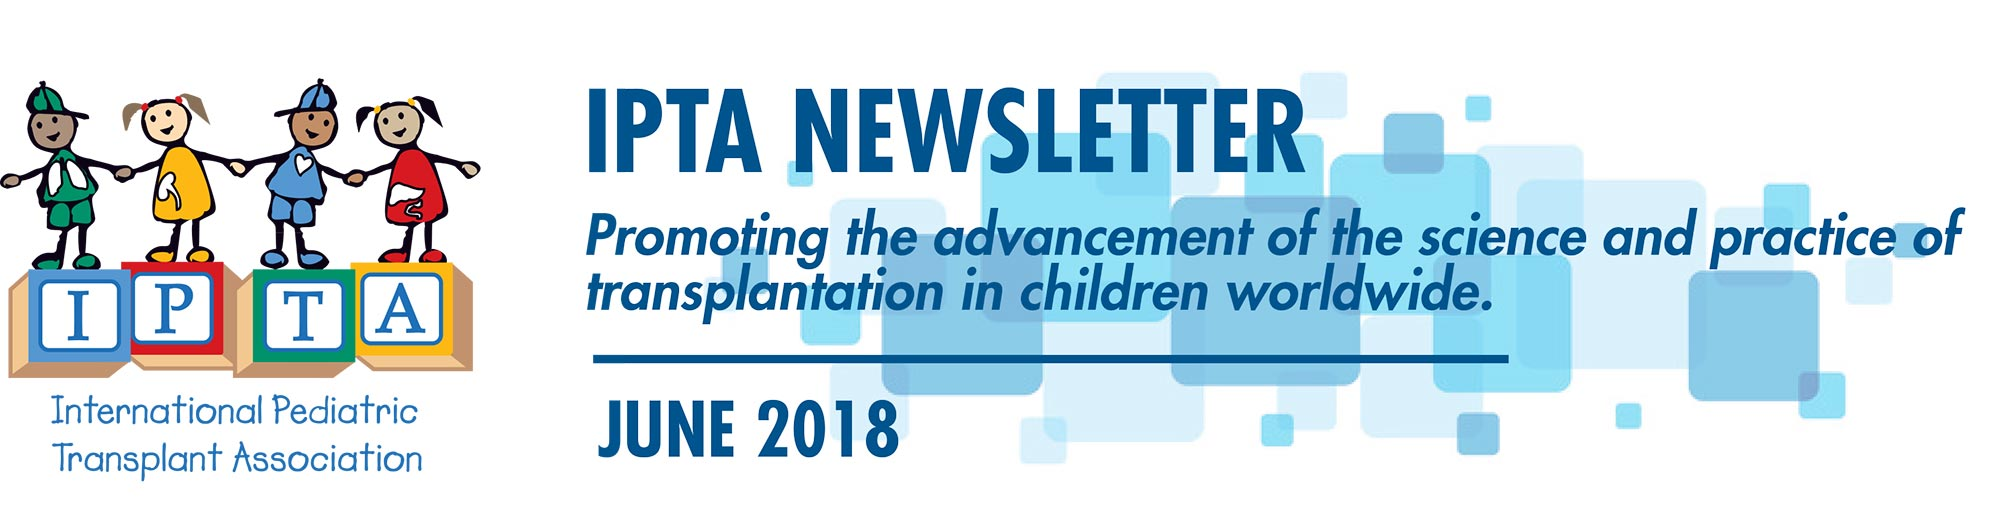 ipta newsletter